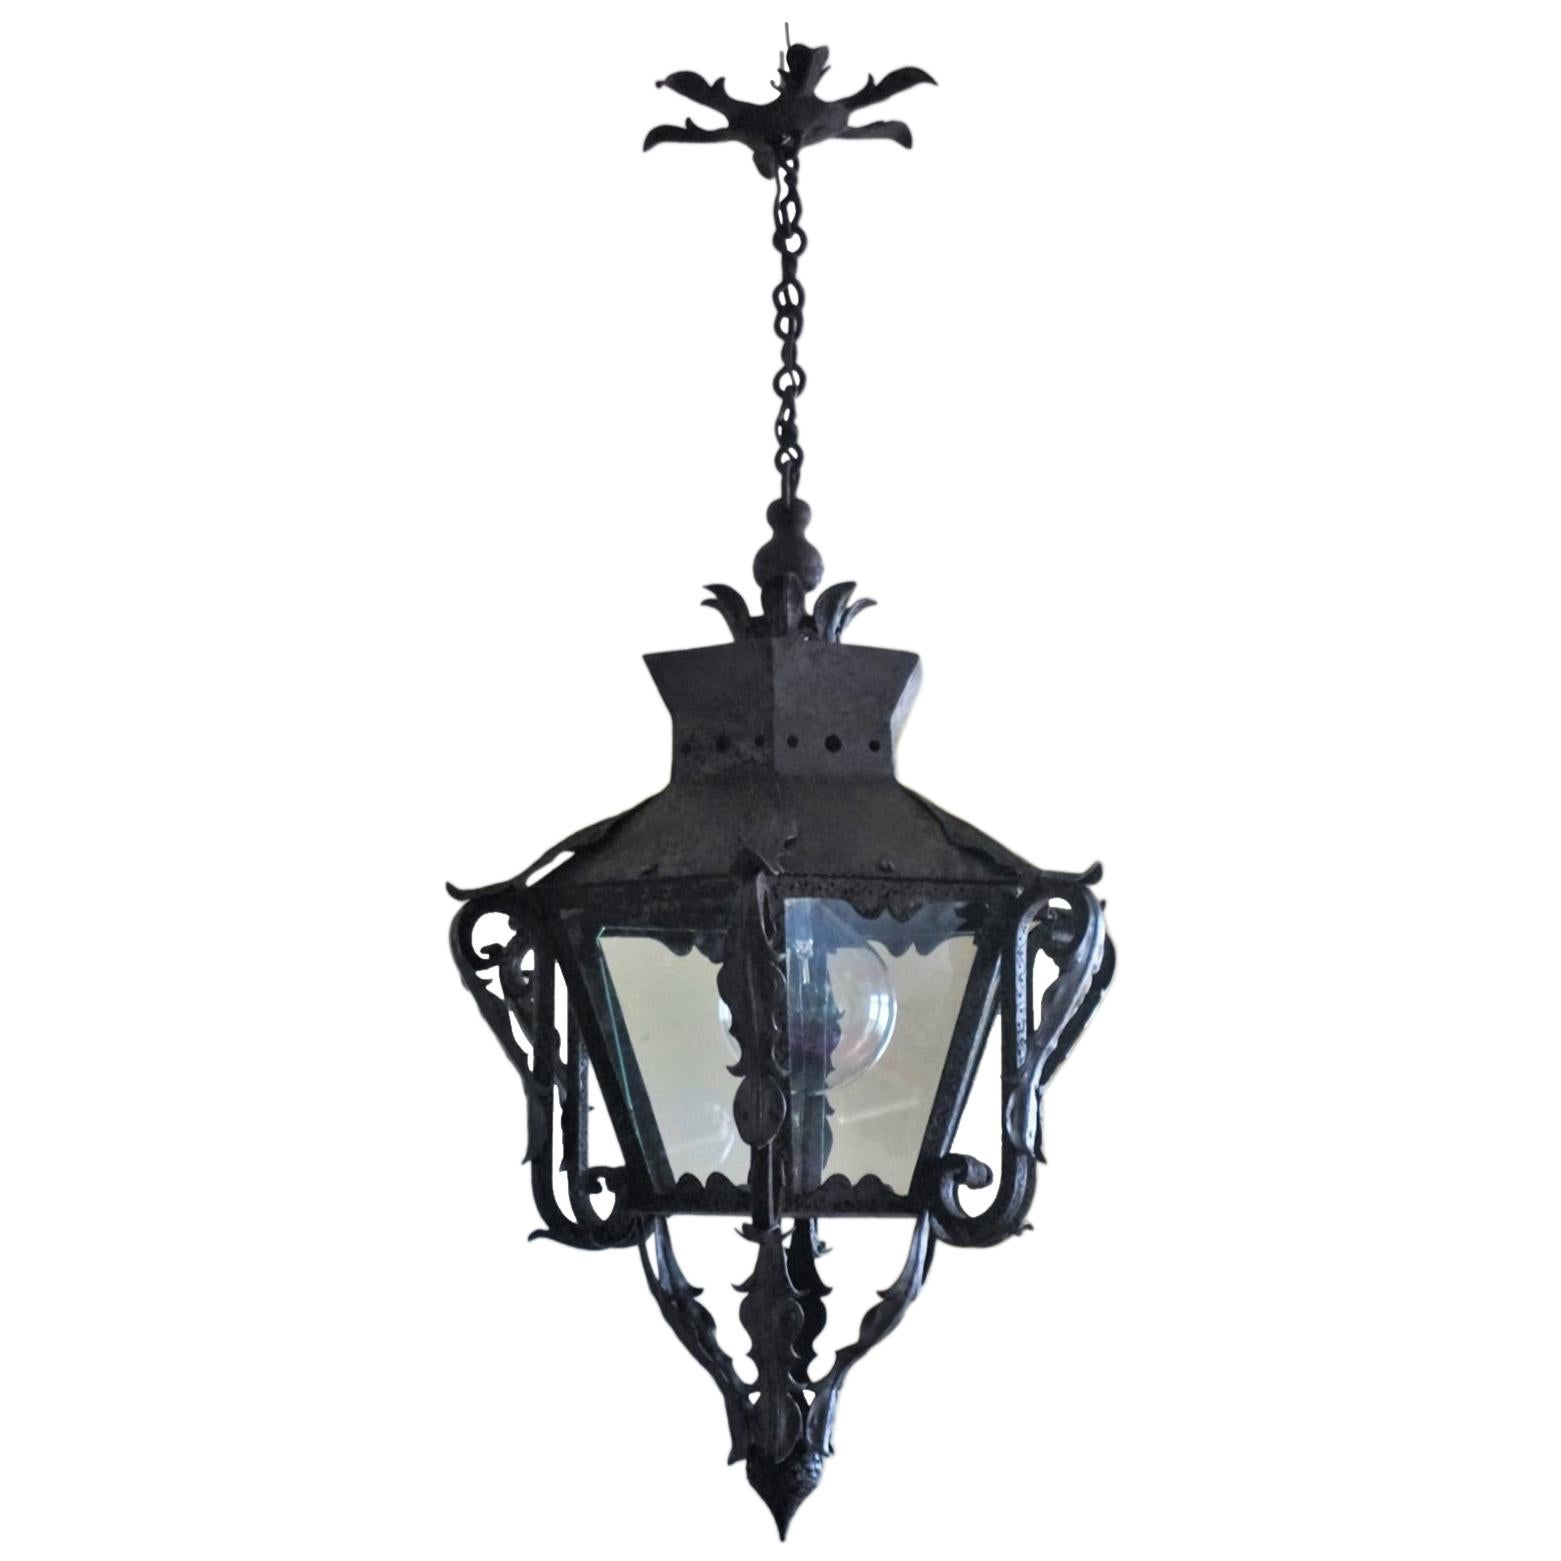 19th-Century Large French Hand Forged Iron Glass Electrified Street Lantern